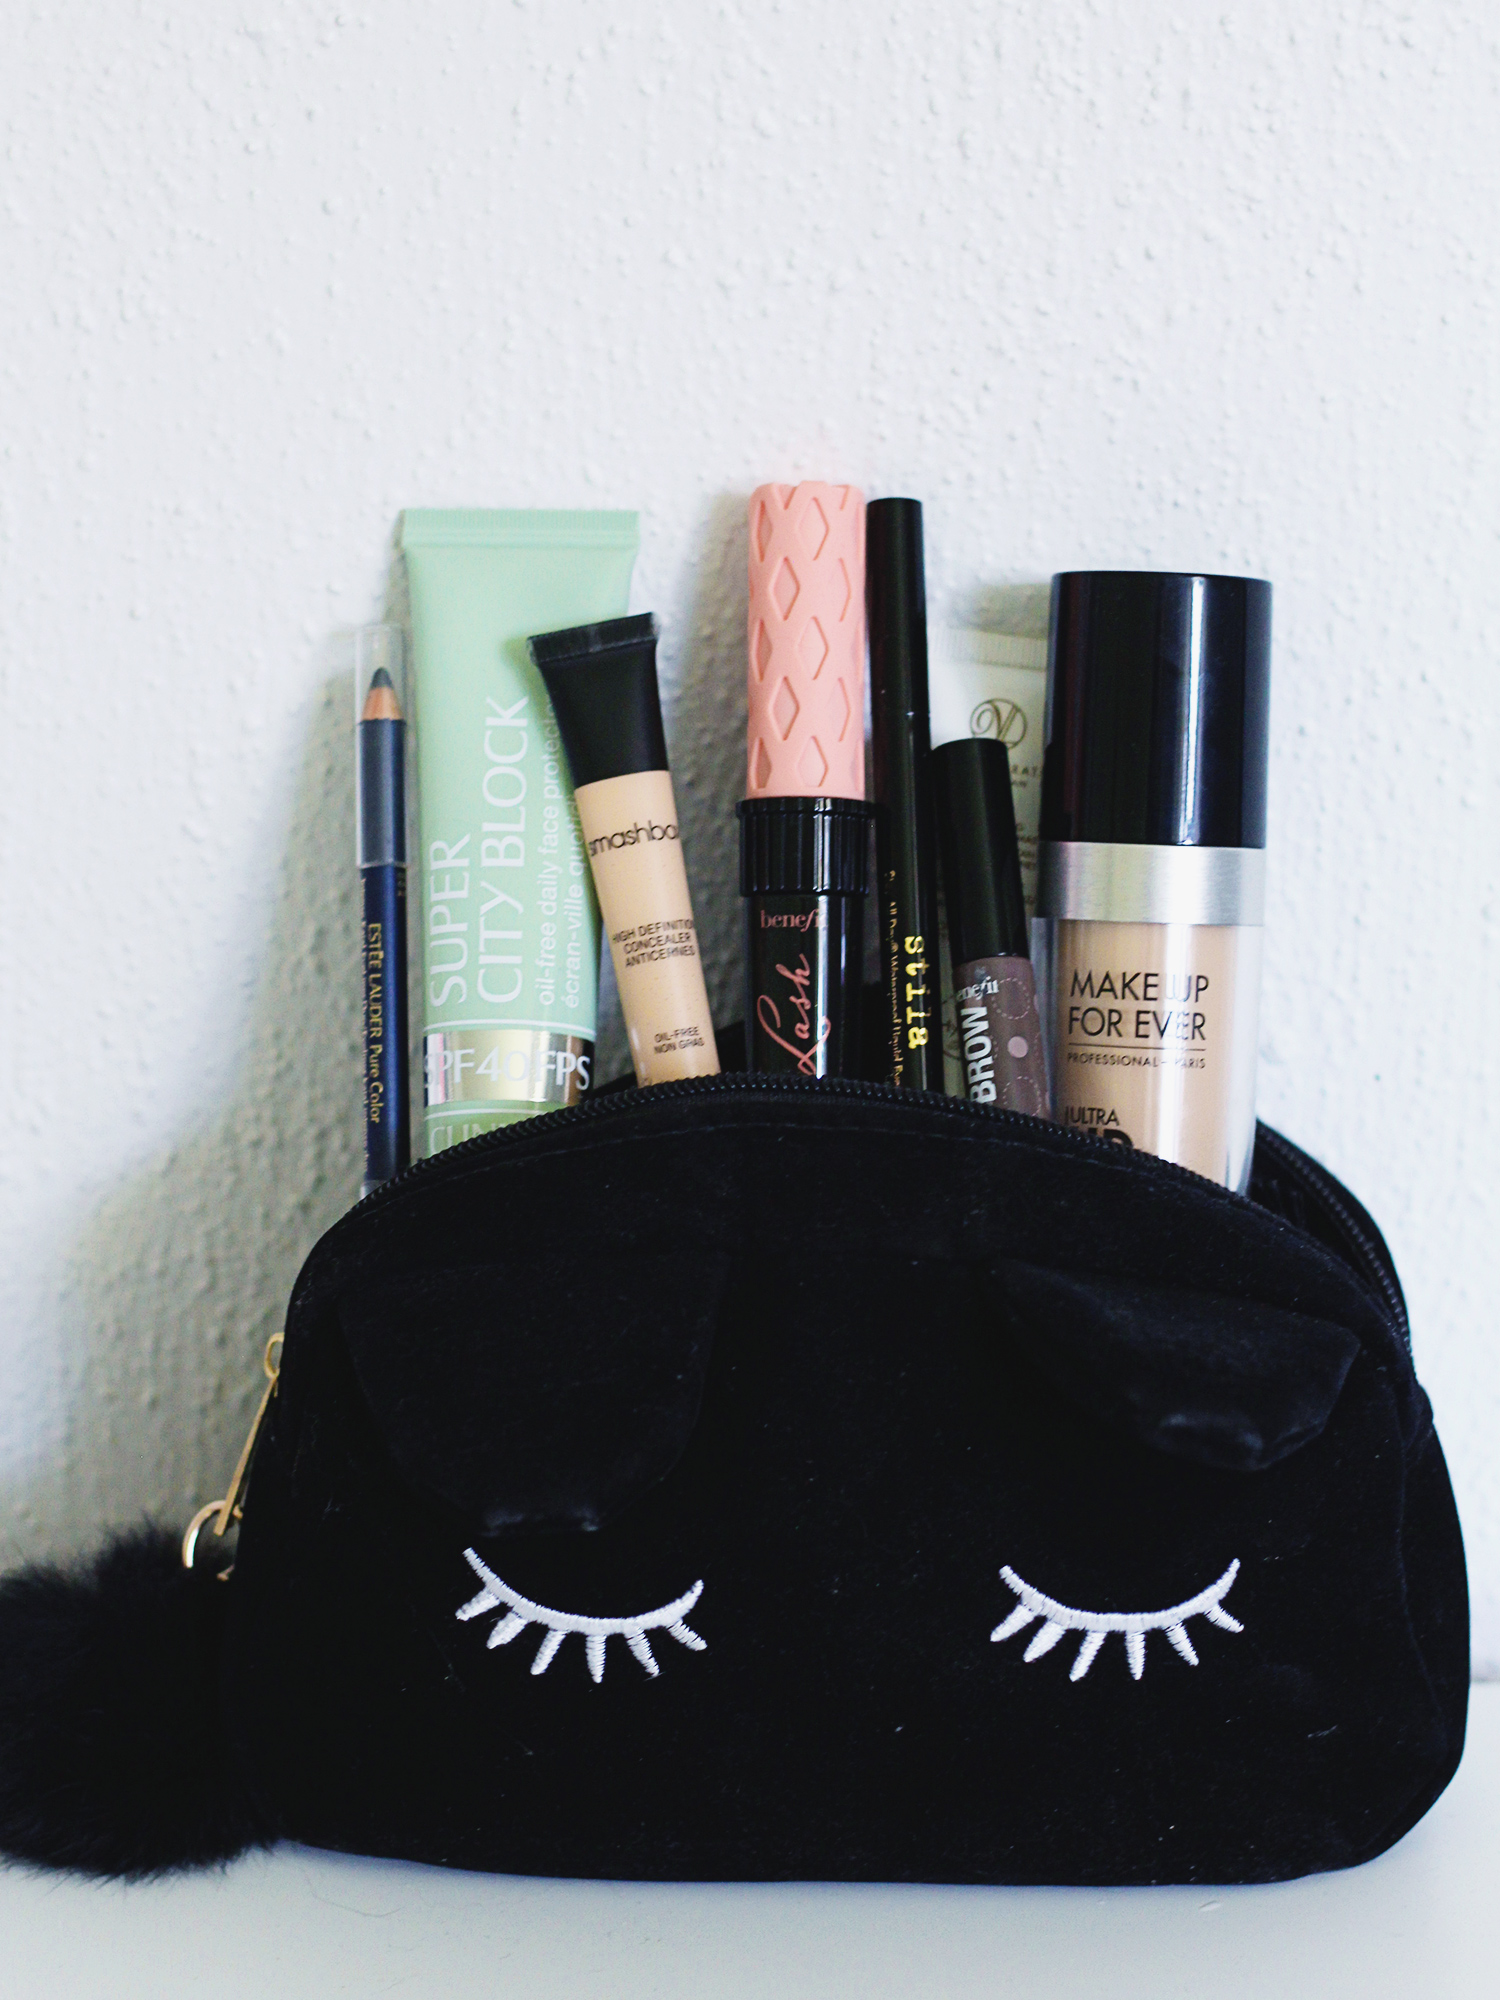 Beauty items I can't live without!